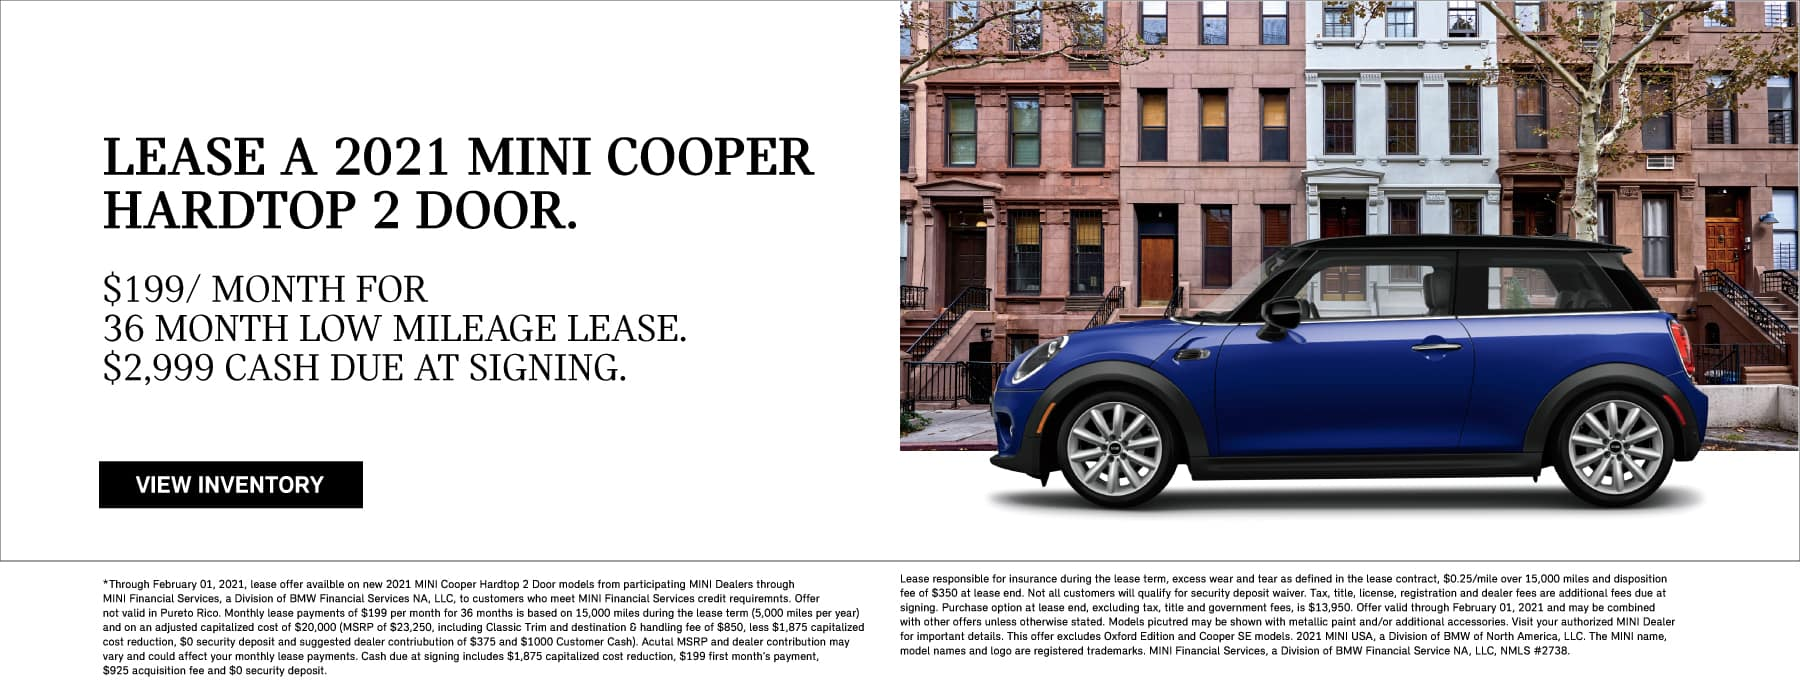 Lease a 2021 MINI Cooper Hardtop 2 Door for $199 per month. 36 low mileage lease with $2999 due at signing.